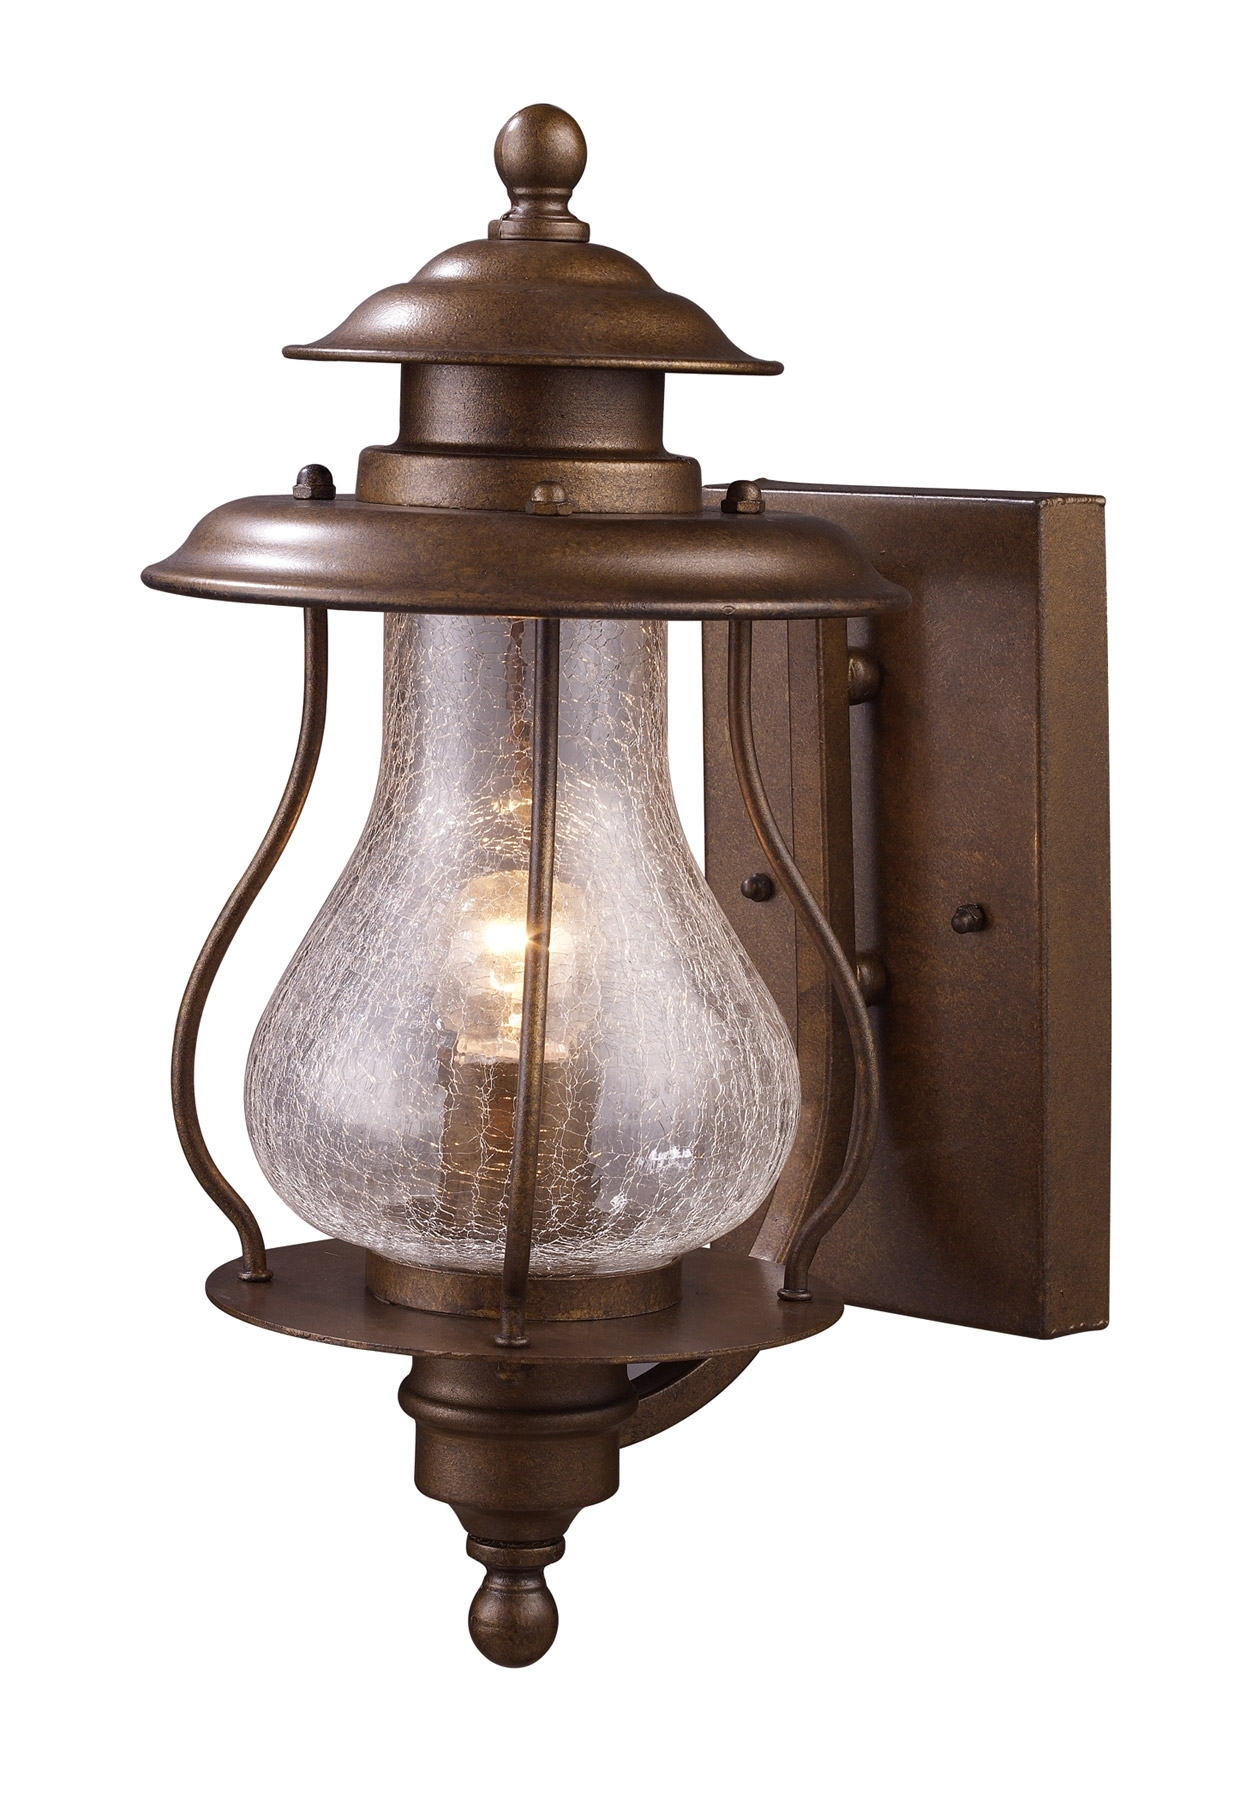 Outdoor Lamps And Lanterns | Lighting And Ceiling Fans throughout Outdoor Lamp Lanterns (Image 14 of 20)